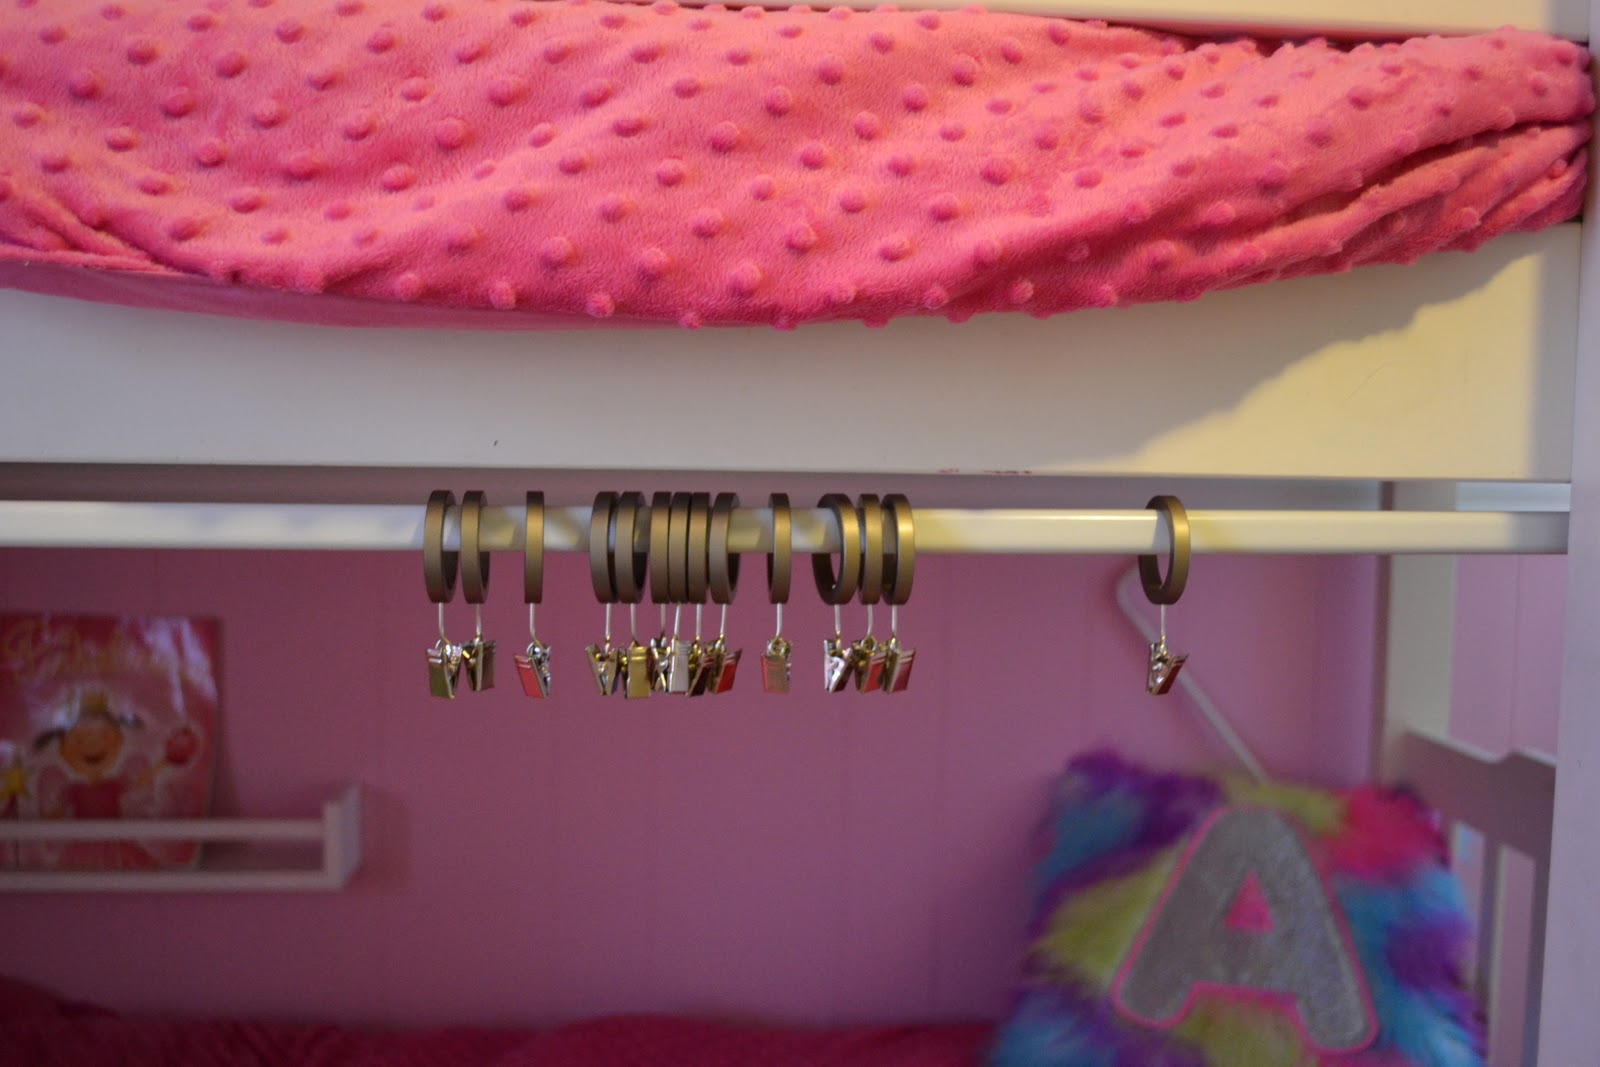 Mount Your Tension Rod To The Bunk Bed